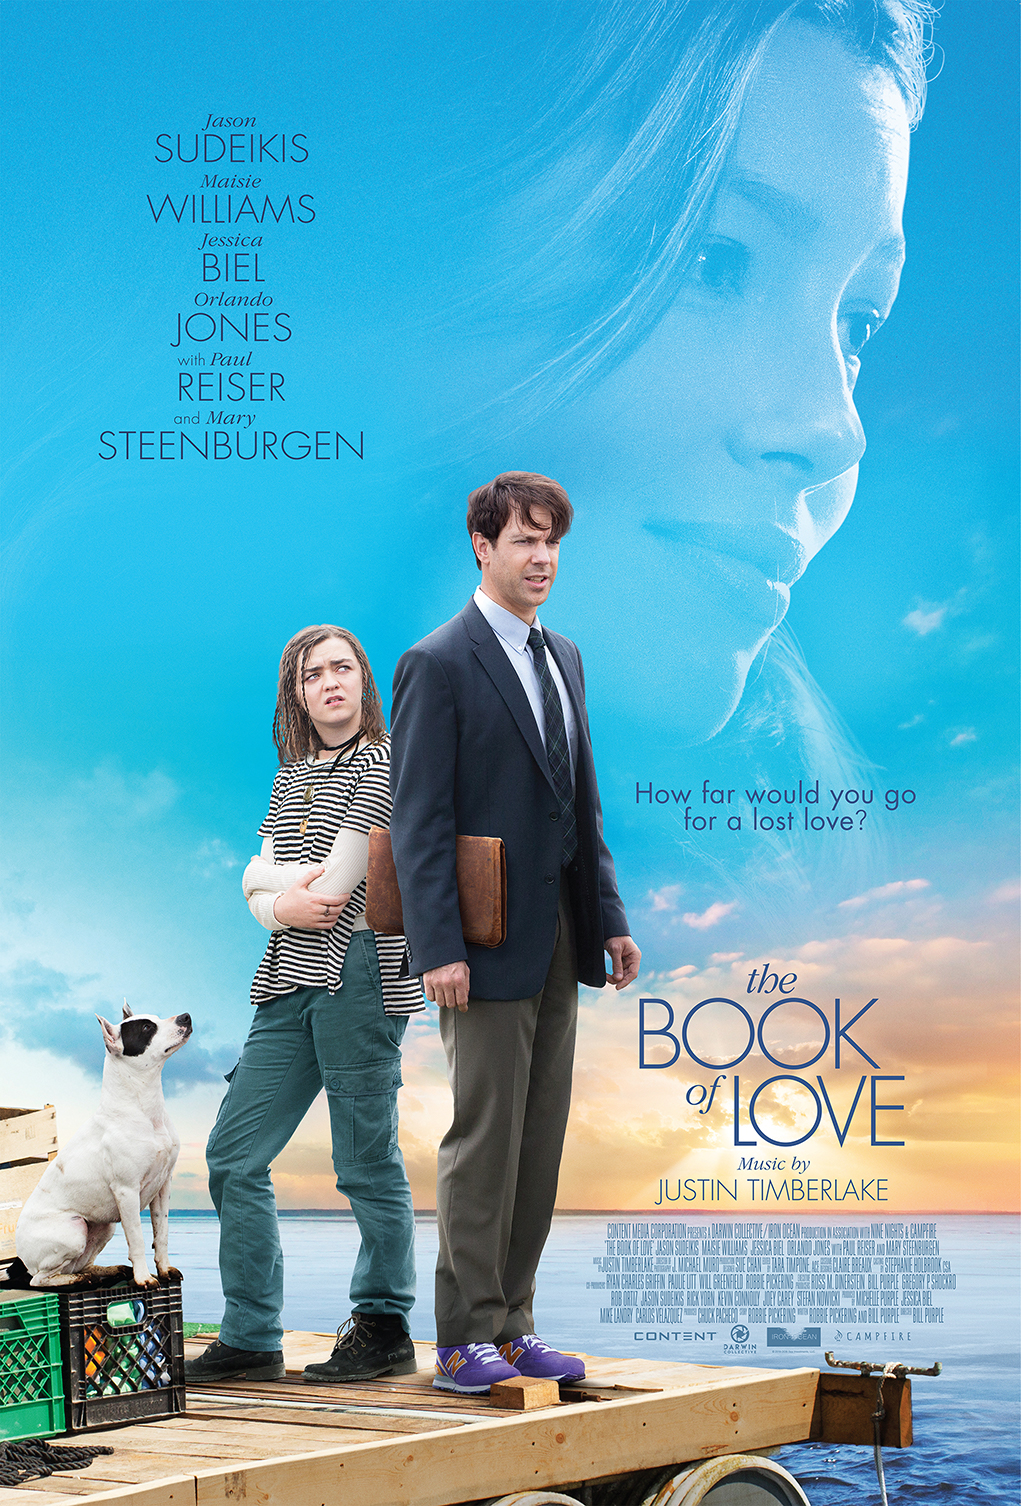 book-of-love-poster-web2.jpg